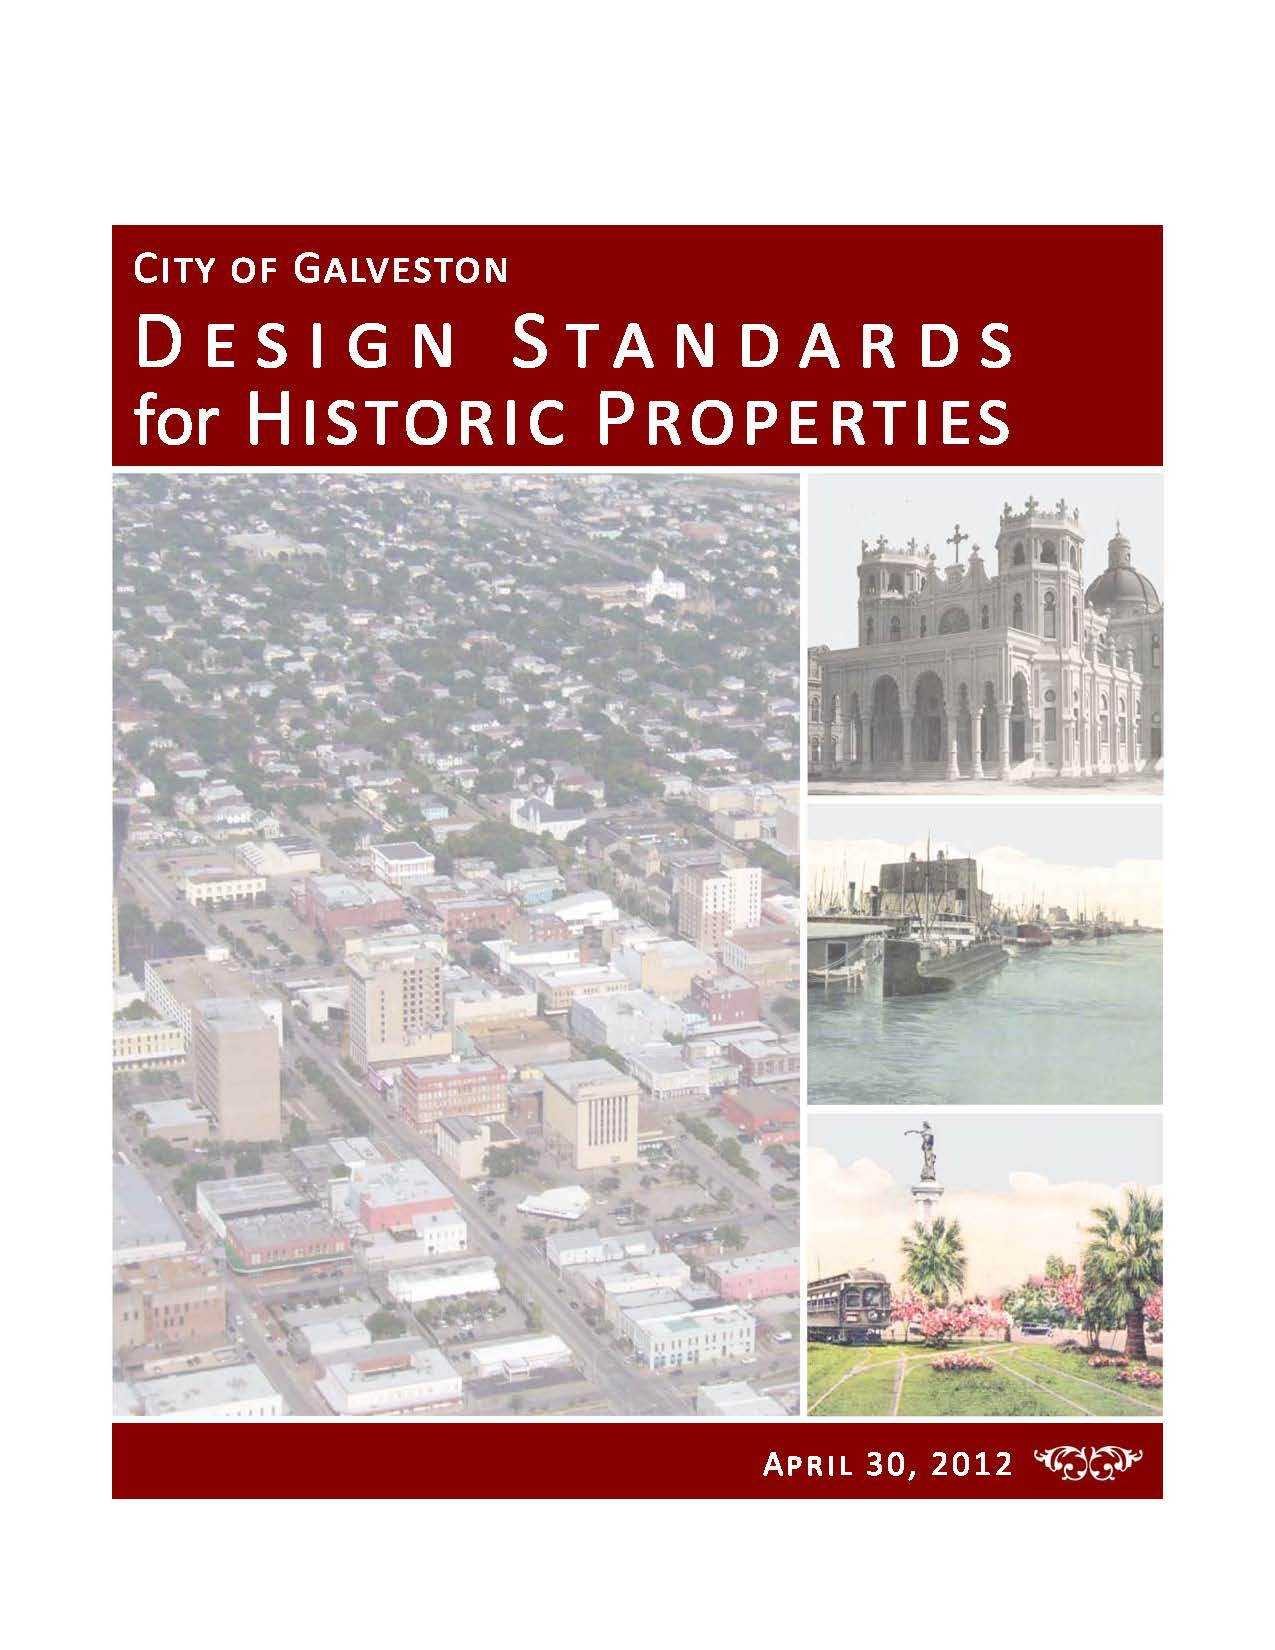 Design Standards for Historic Properties Cover Opens in new window